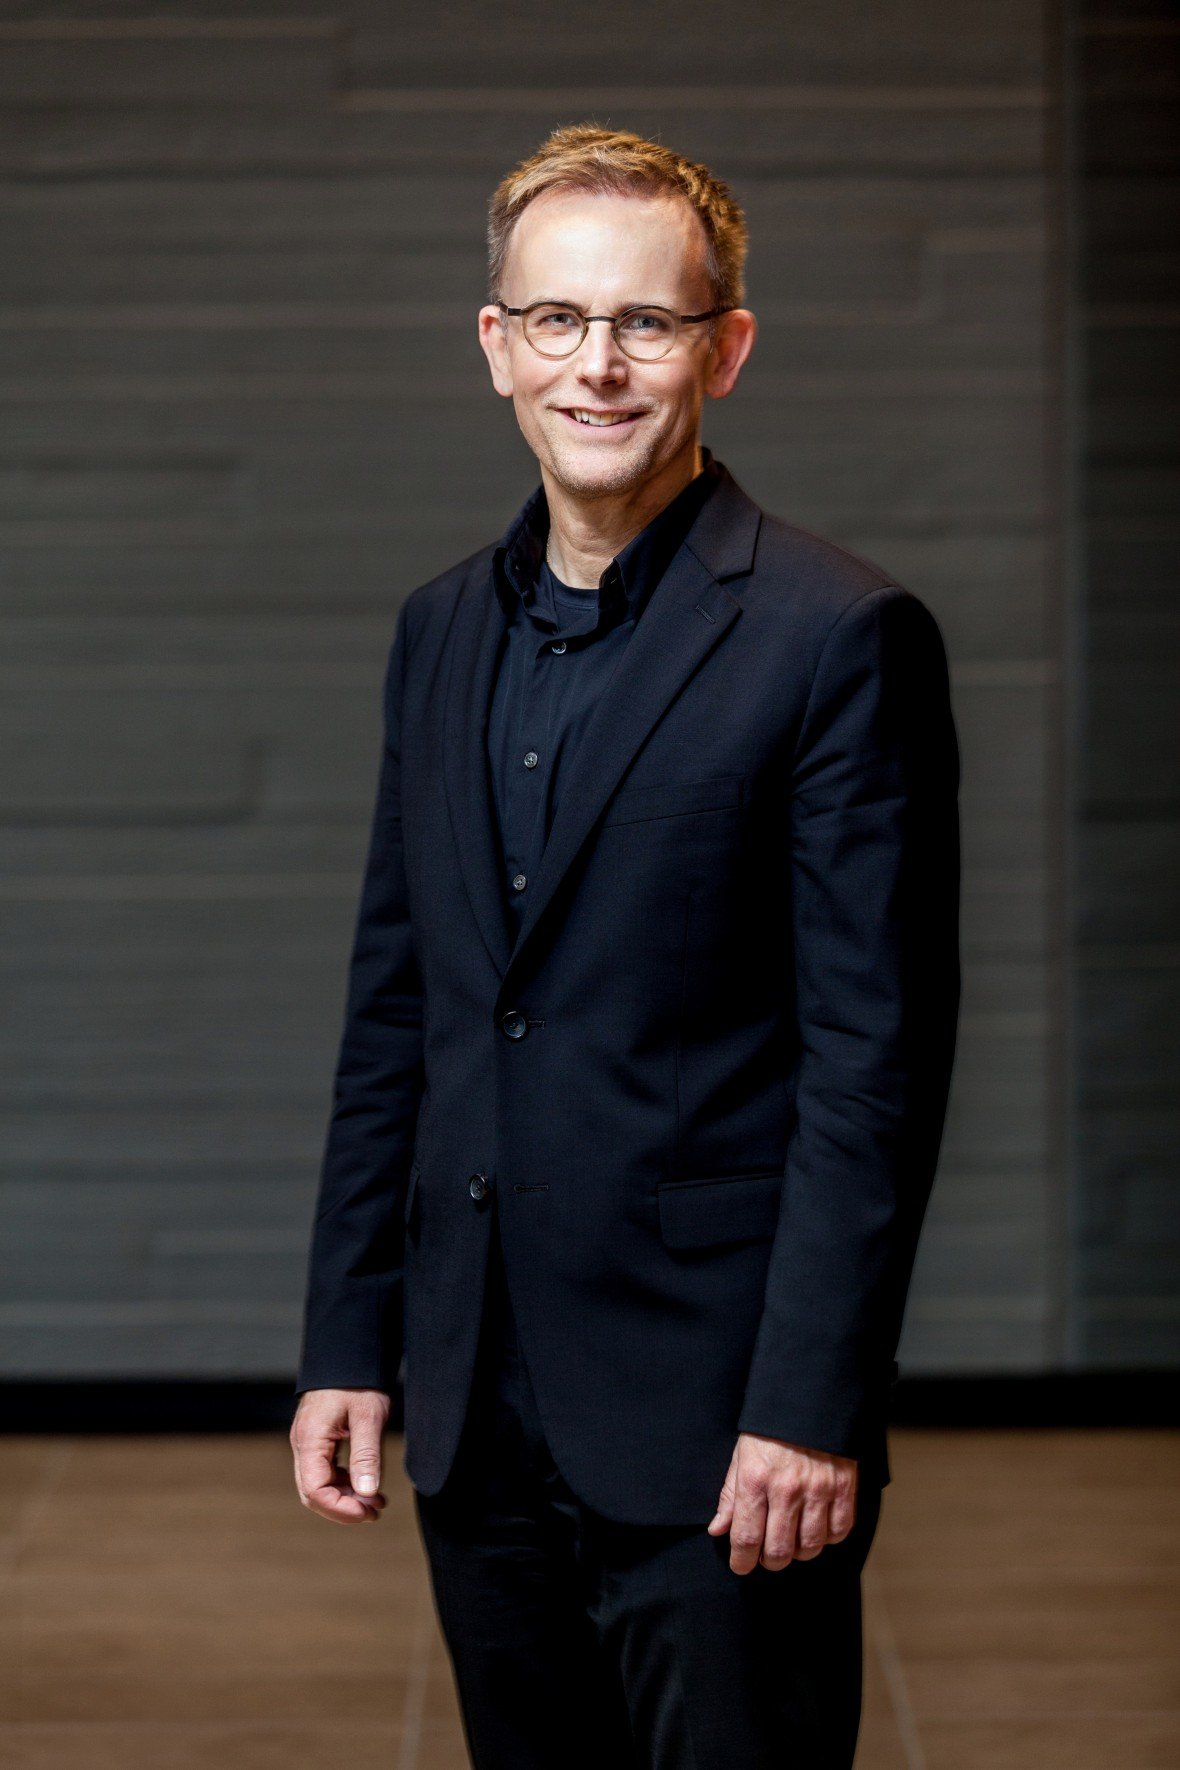 A portrait image of Texas State University's School of Music Artist-in-Residence, Dr. Craig Hella Johnson. A man wearing a solid black suit and circular-glasses smiles at the camera.